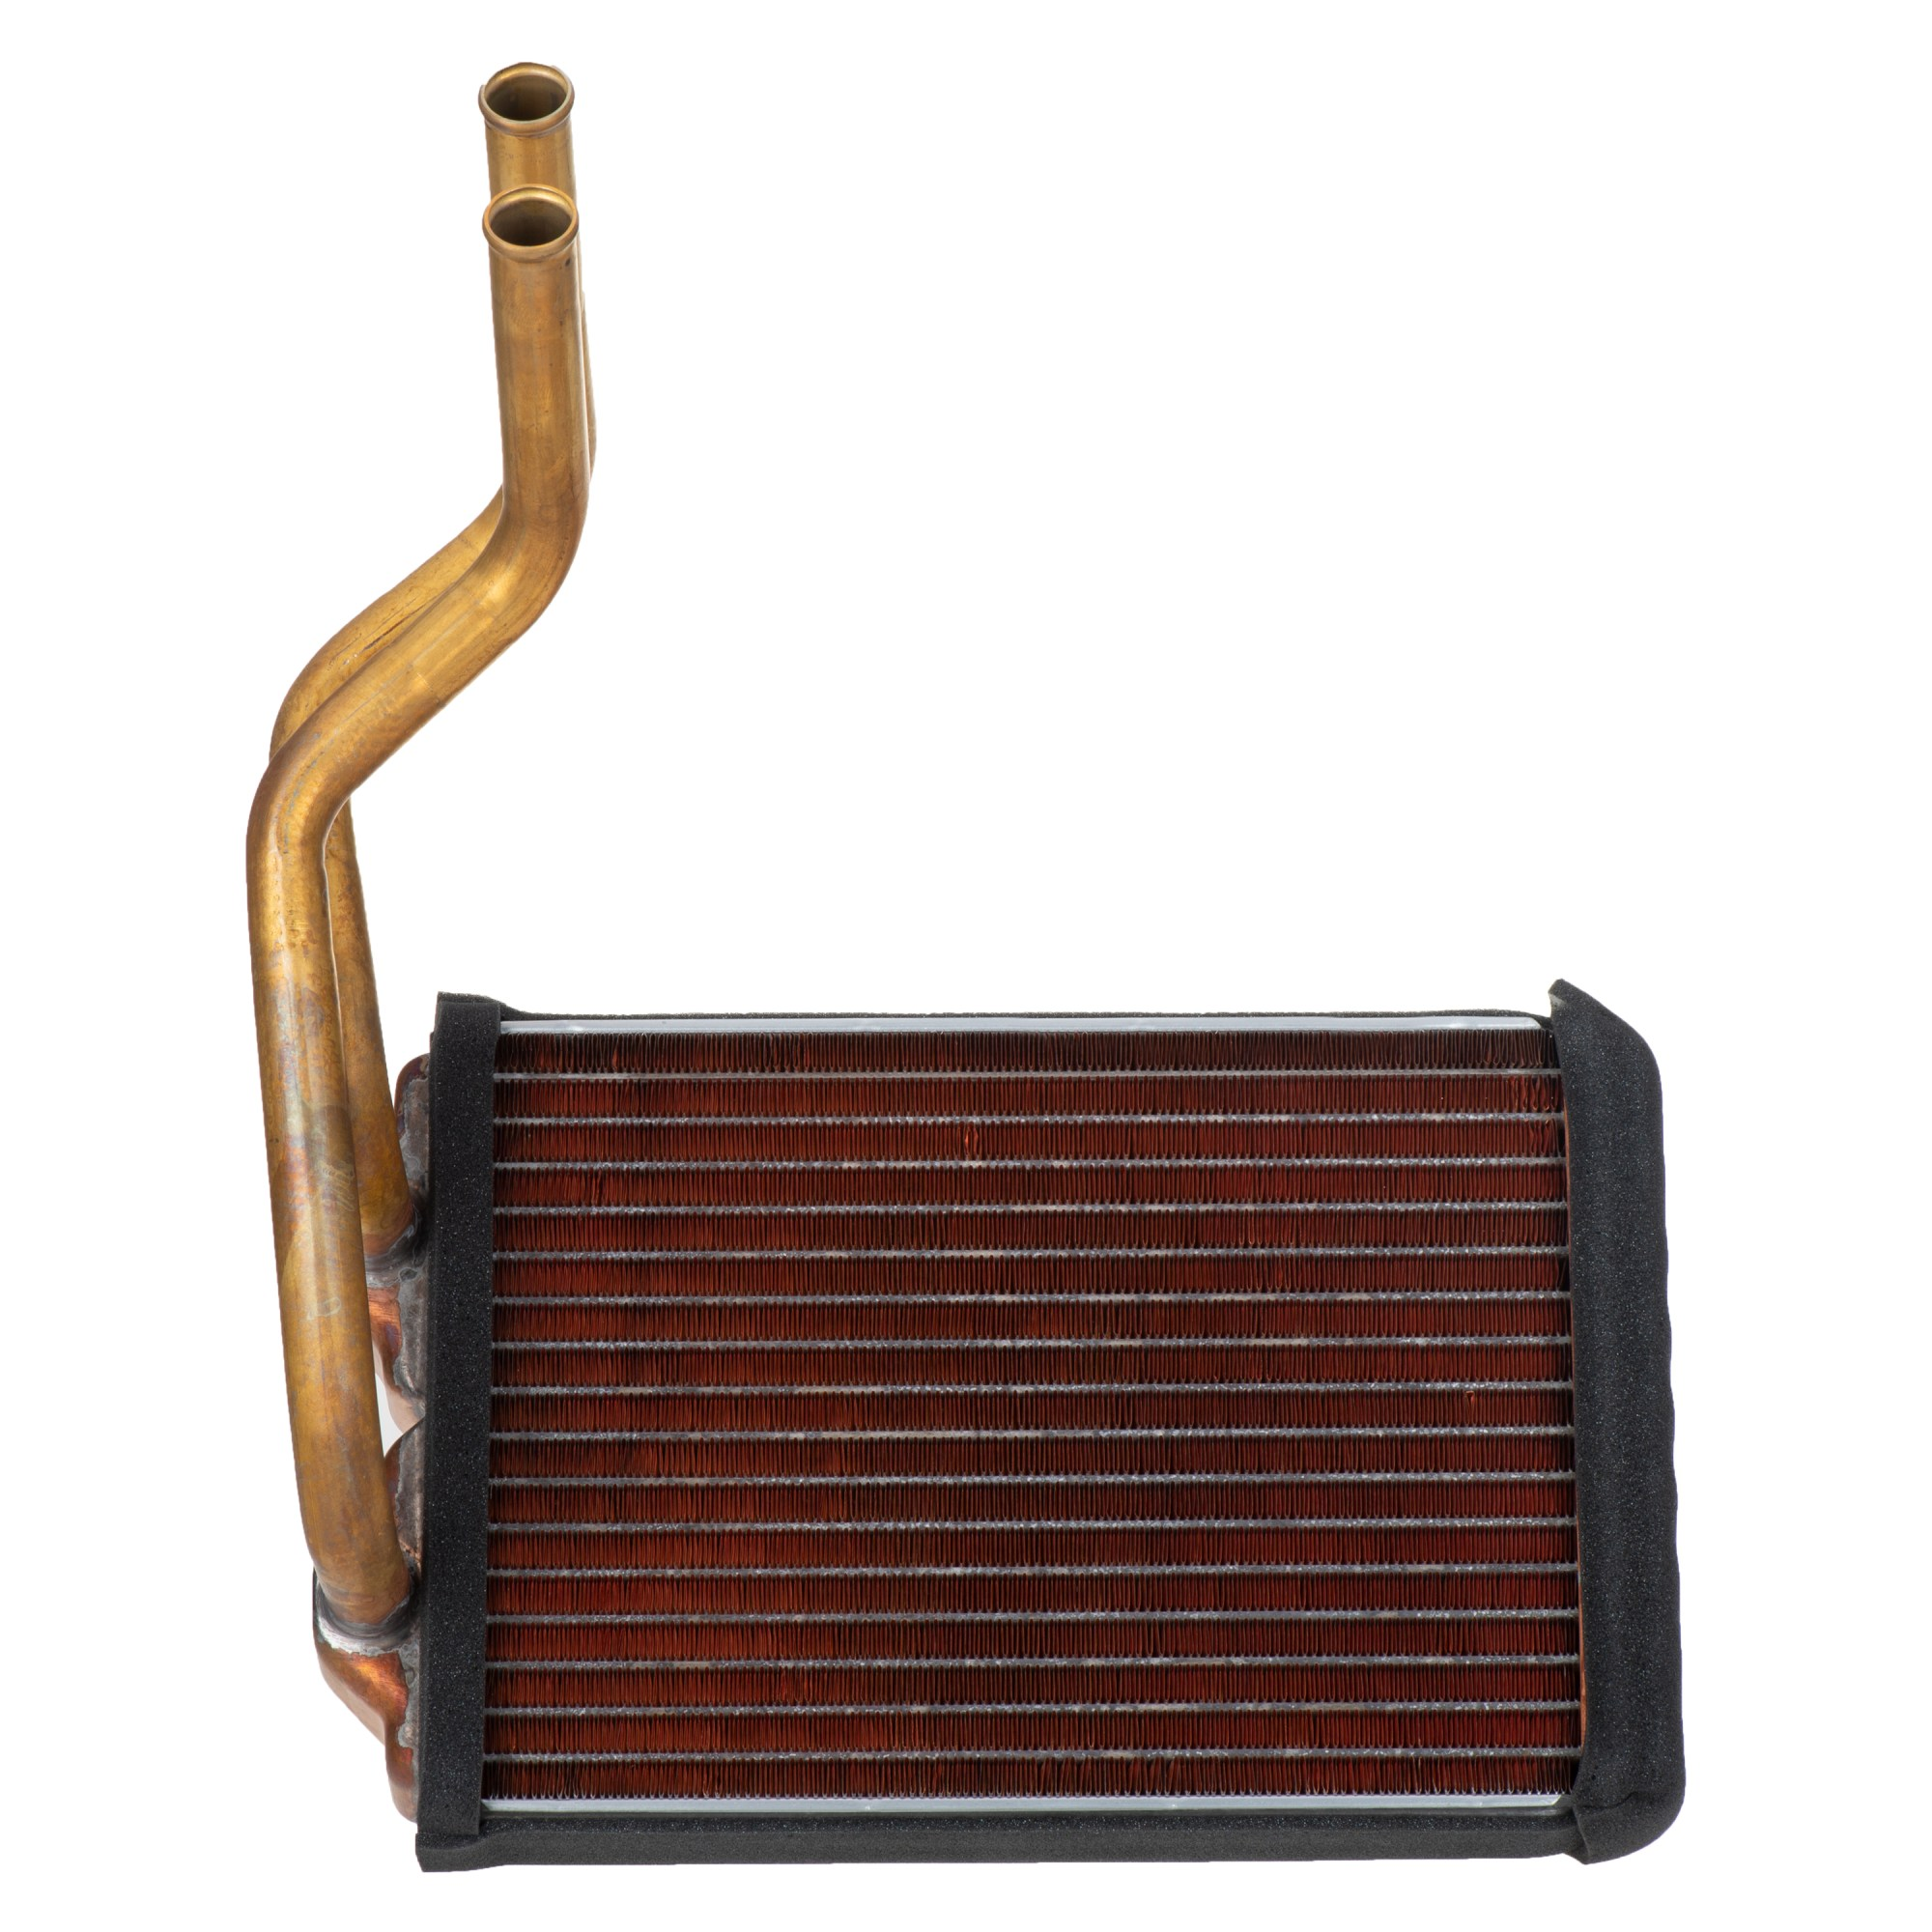 hight resolution of jeep grand cherokee dodge ram 1500 2500 3500 heater core assembly oem new mopar mopar